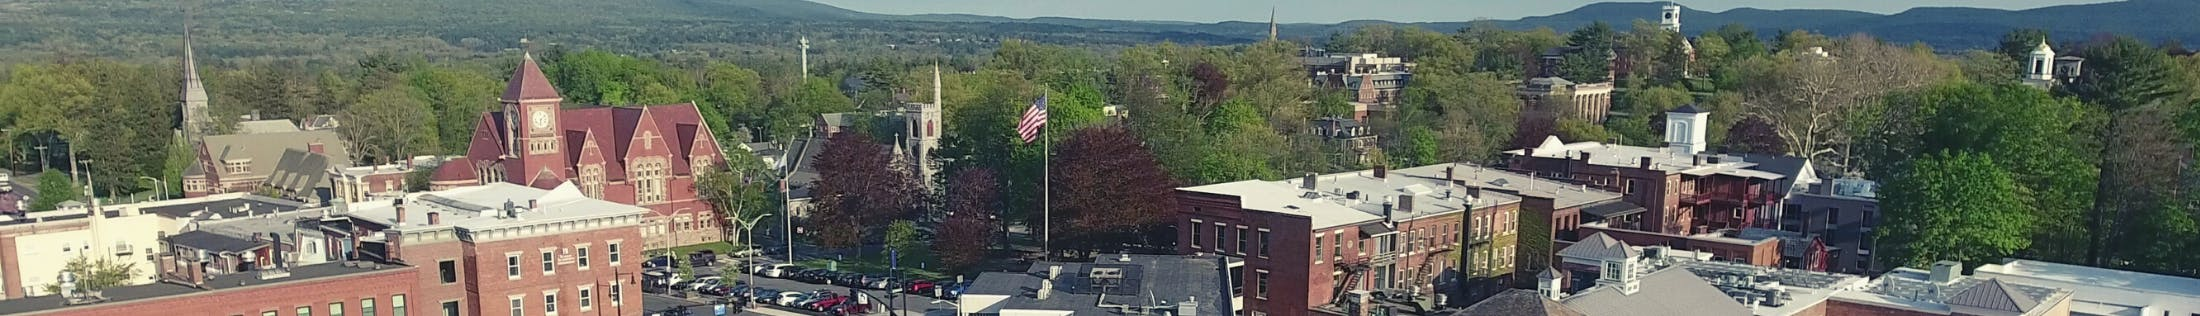 Aerial view of Downtown Amherst Massachusetts with brick buildings and green trees and hills in the background.